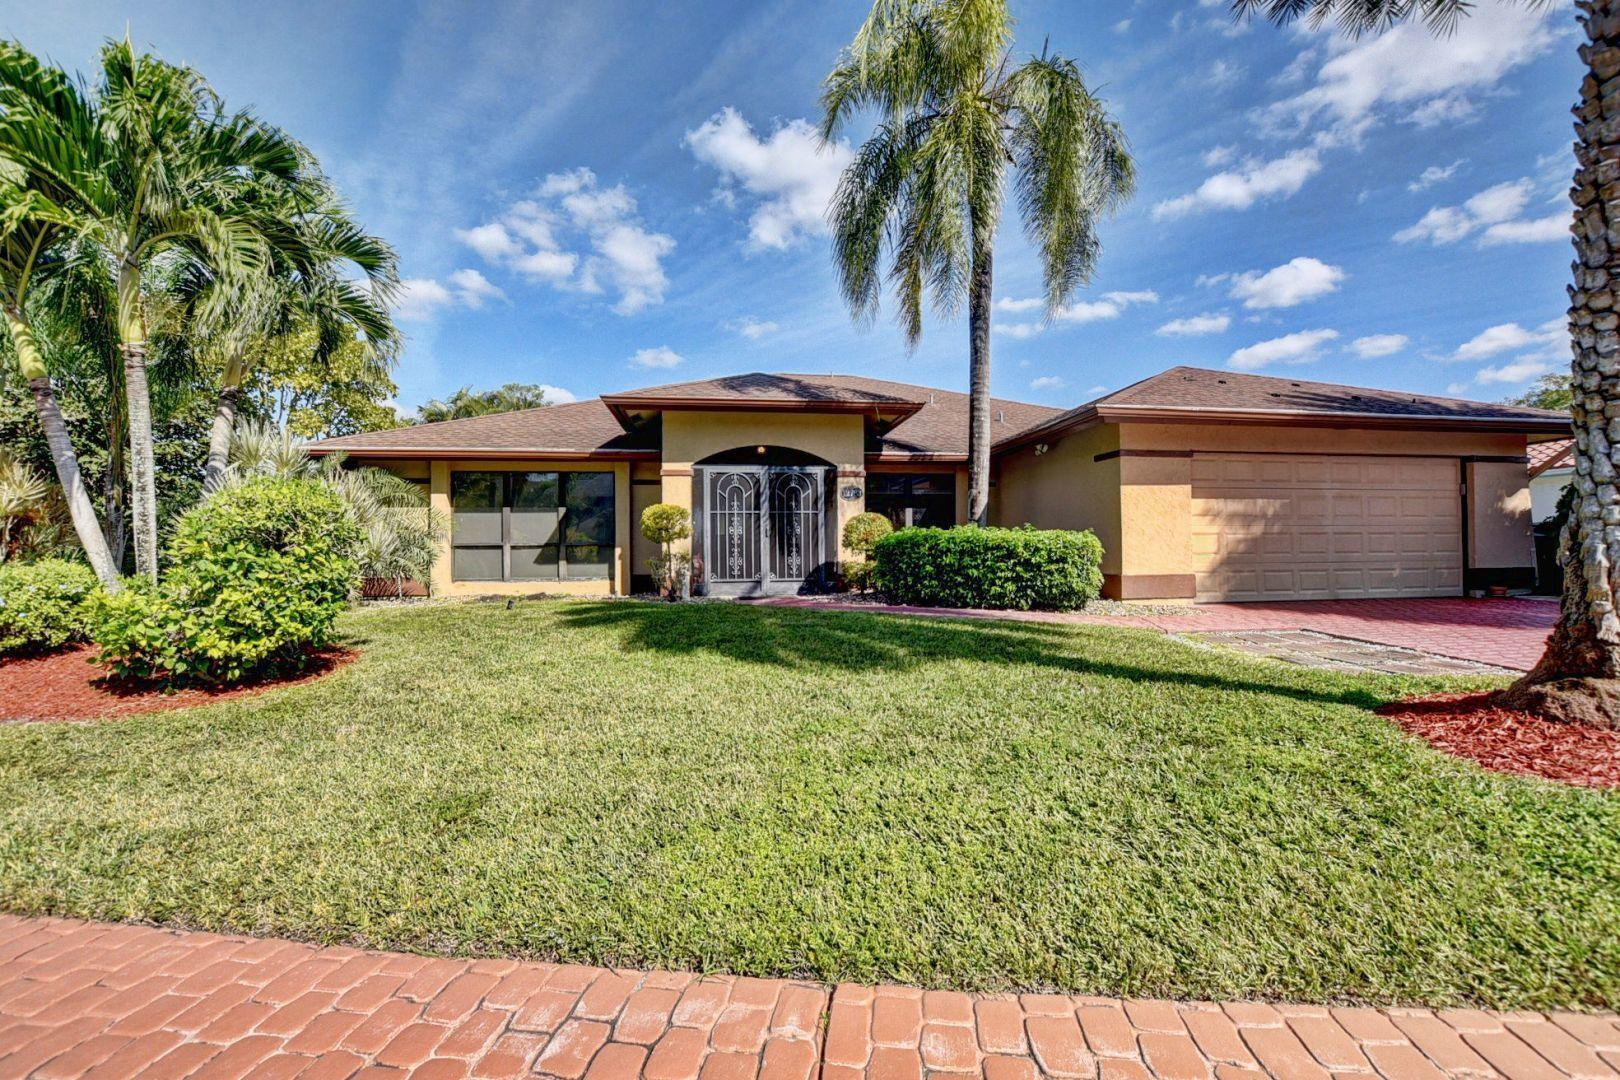 12703 Headwater Circle, Wellington, Florida 33414, 3 Bedrooms Bedrooms, ,3 BathroomsBathrooms,Single Family,For Sale,Island of Wellington,Headwater,RX-10583762